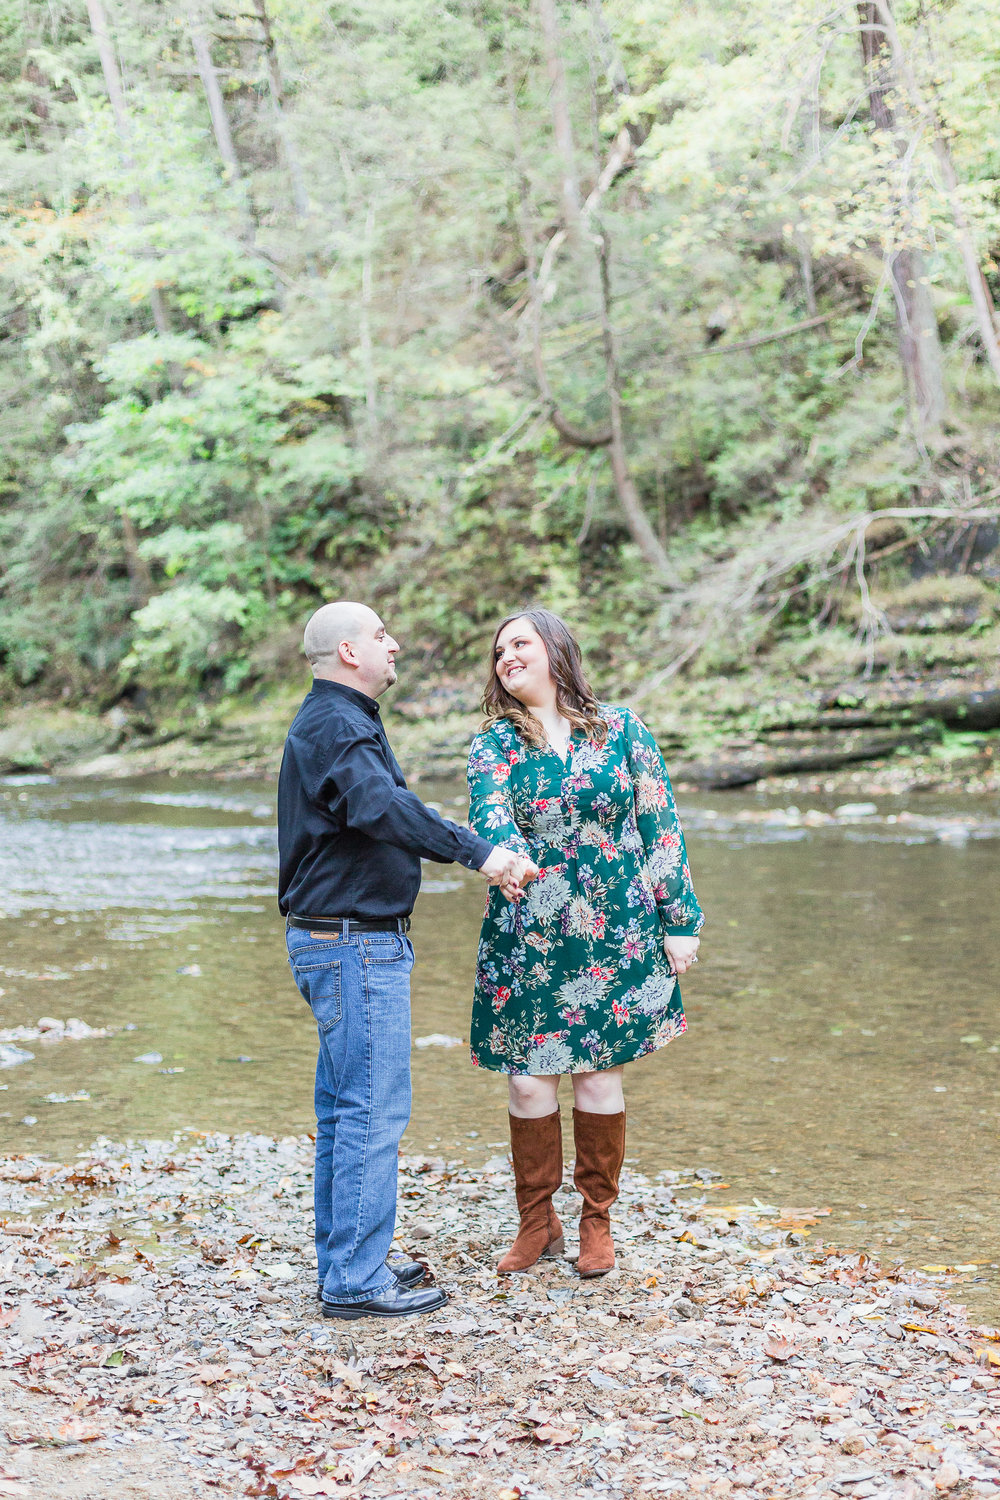 Jacobsburg State Park Nazareth Pennsylvania Woodsy Fall Engagement Session wedding and lifestyle photographer Lytle Photo Co (42 of 64).jpg